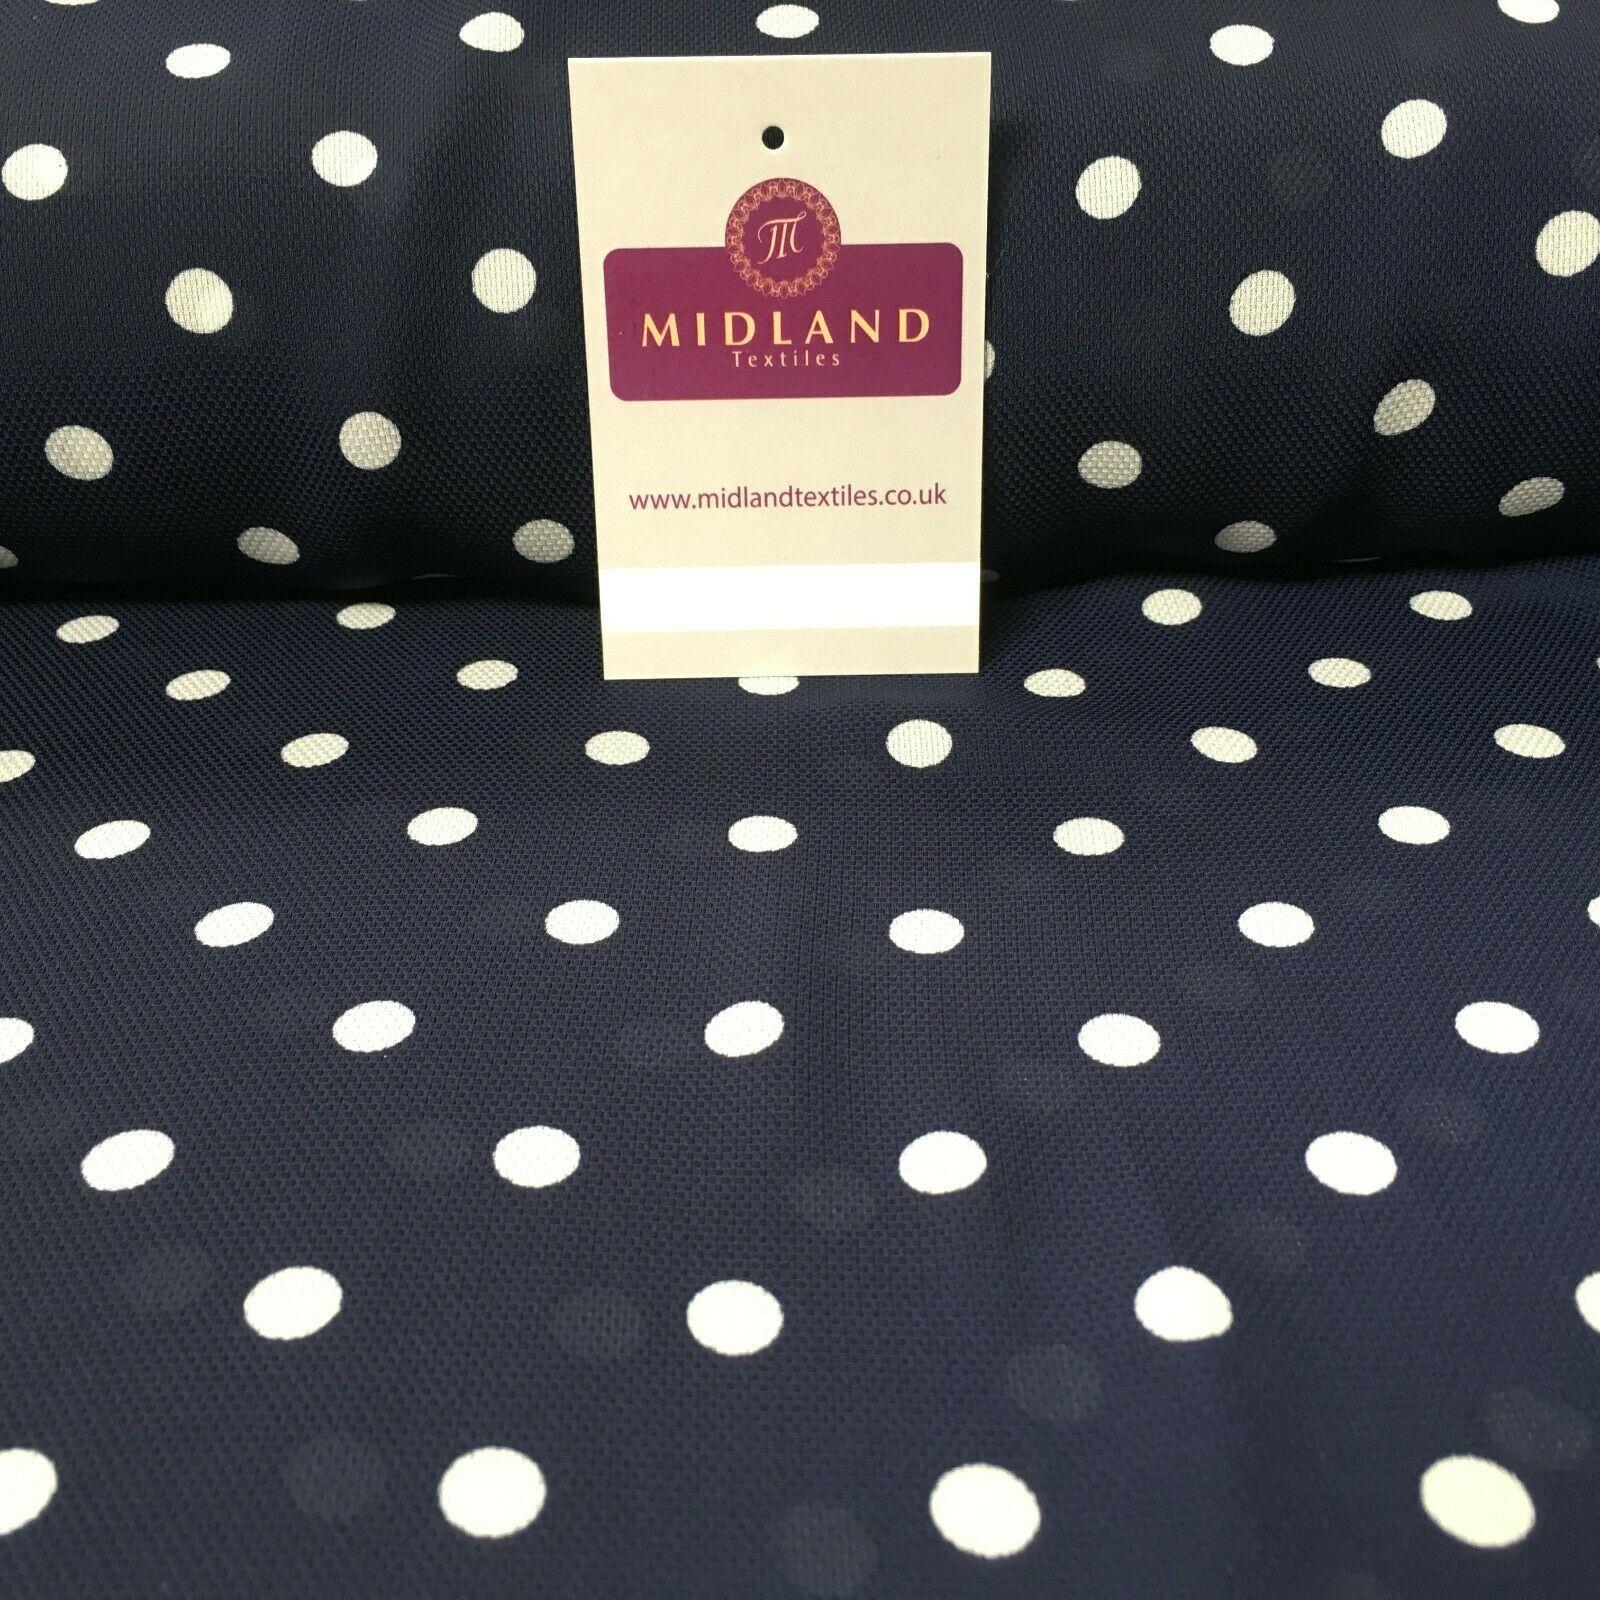 Navy & Ivory Spot dot Soft Georgette twist voile Dress Fabric 147cm MK1185-1